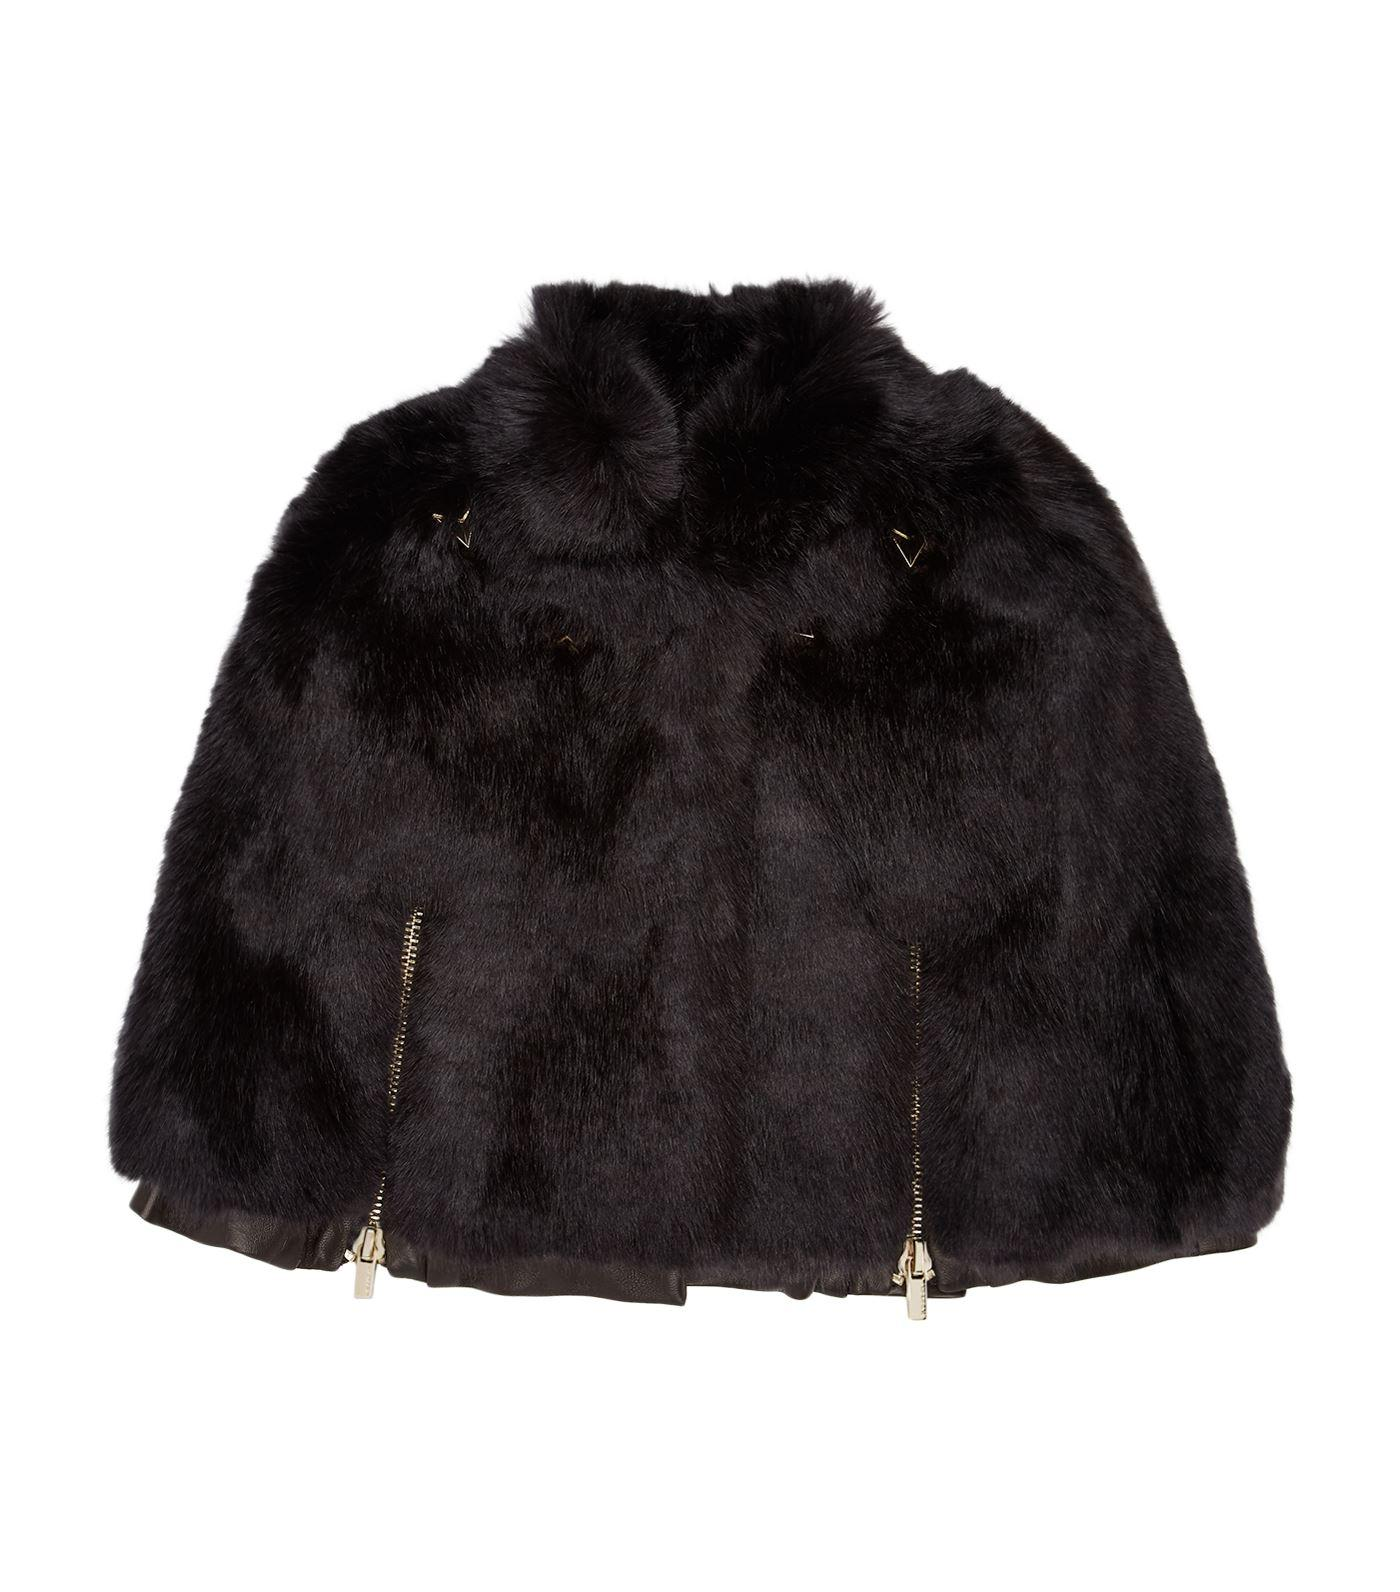 Givenchy Faux Fur Leather Cape In Black